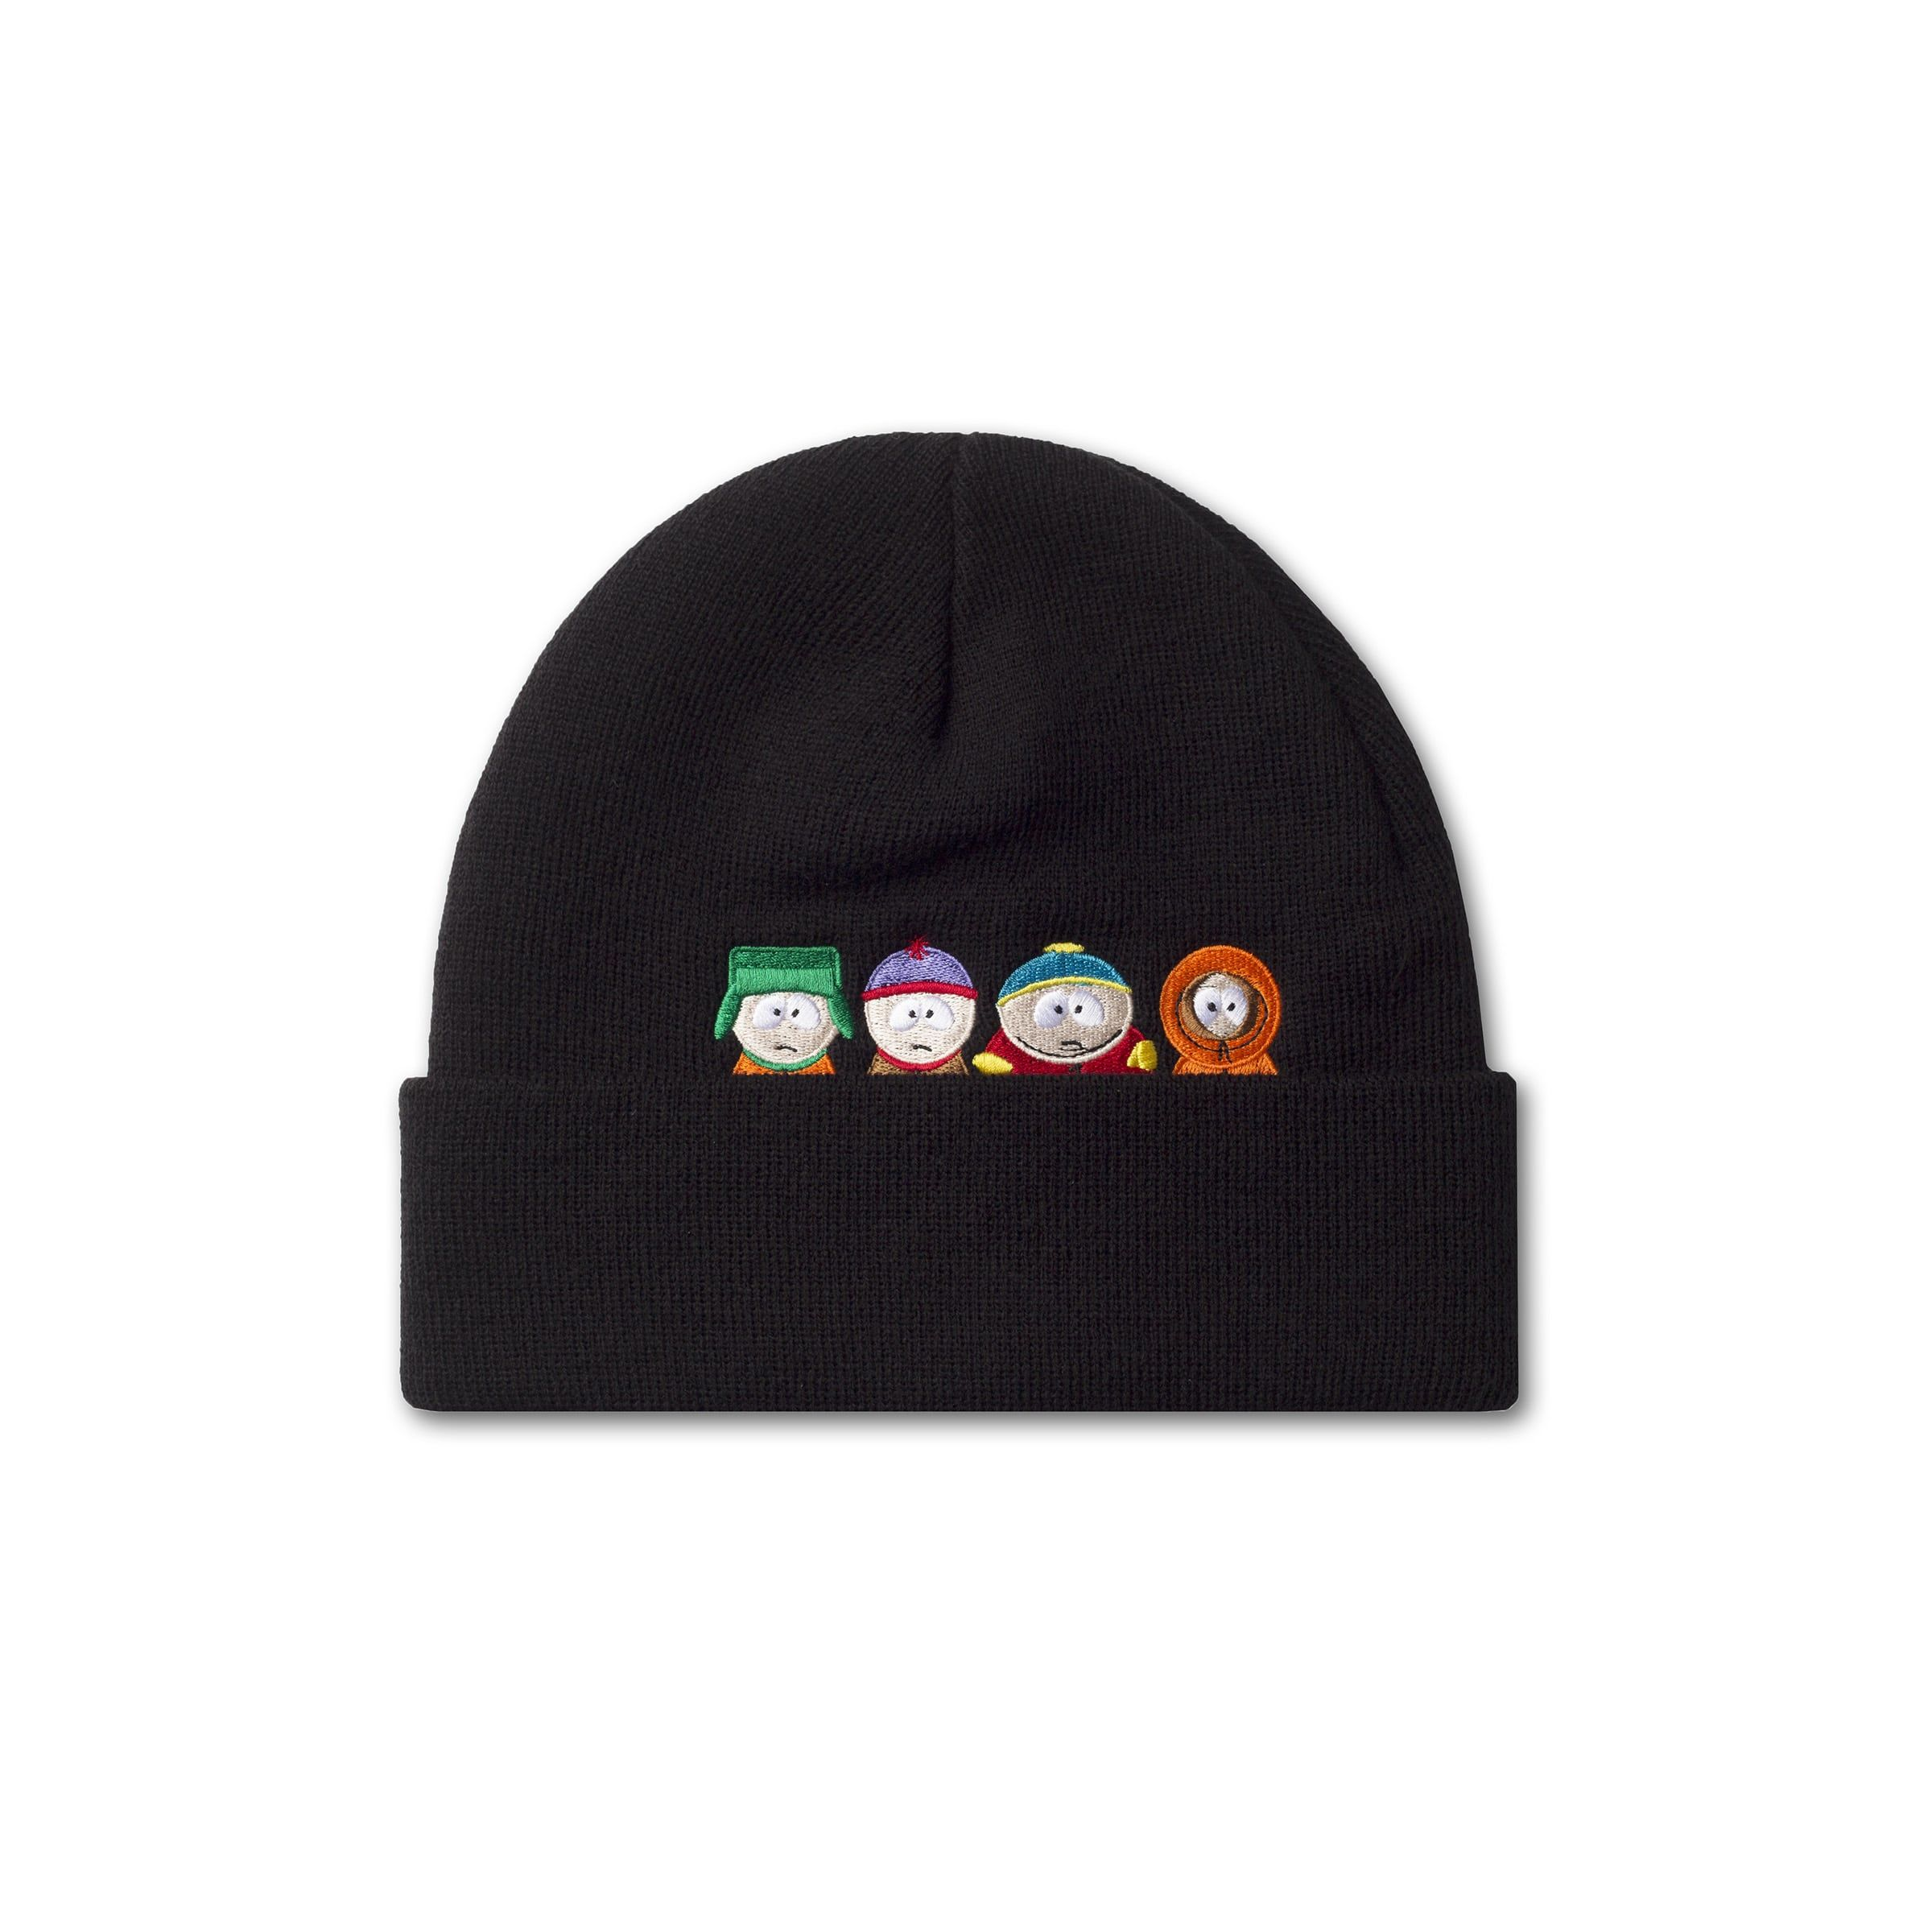 Czapka zimowa HUFx South Park Kids Black